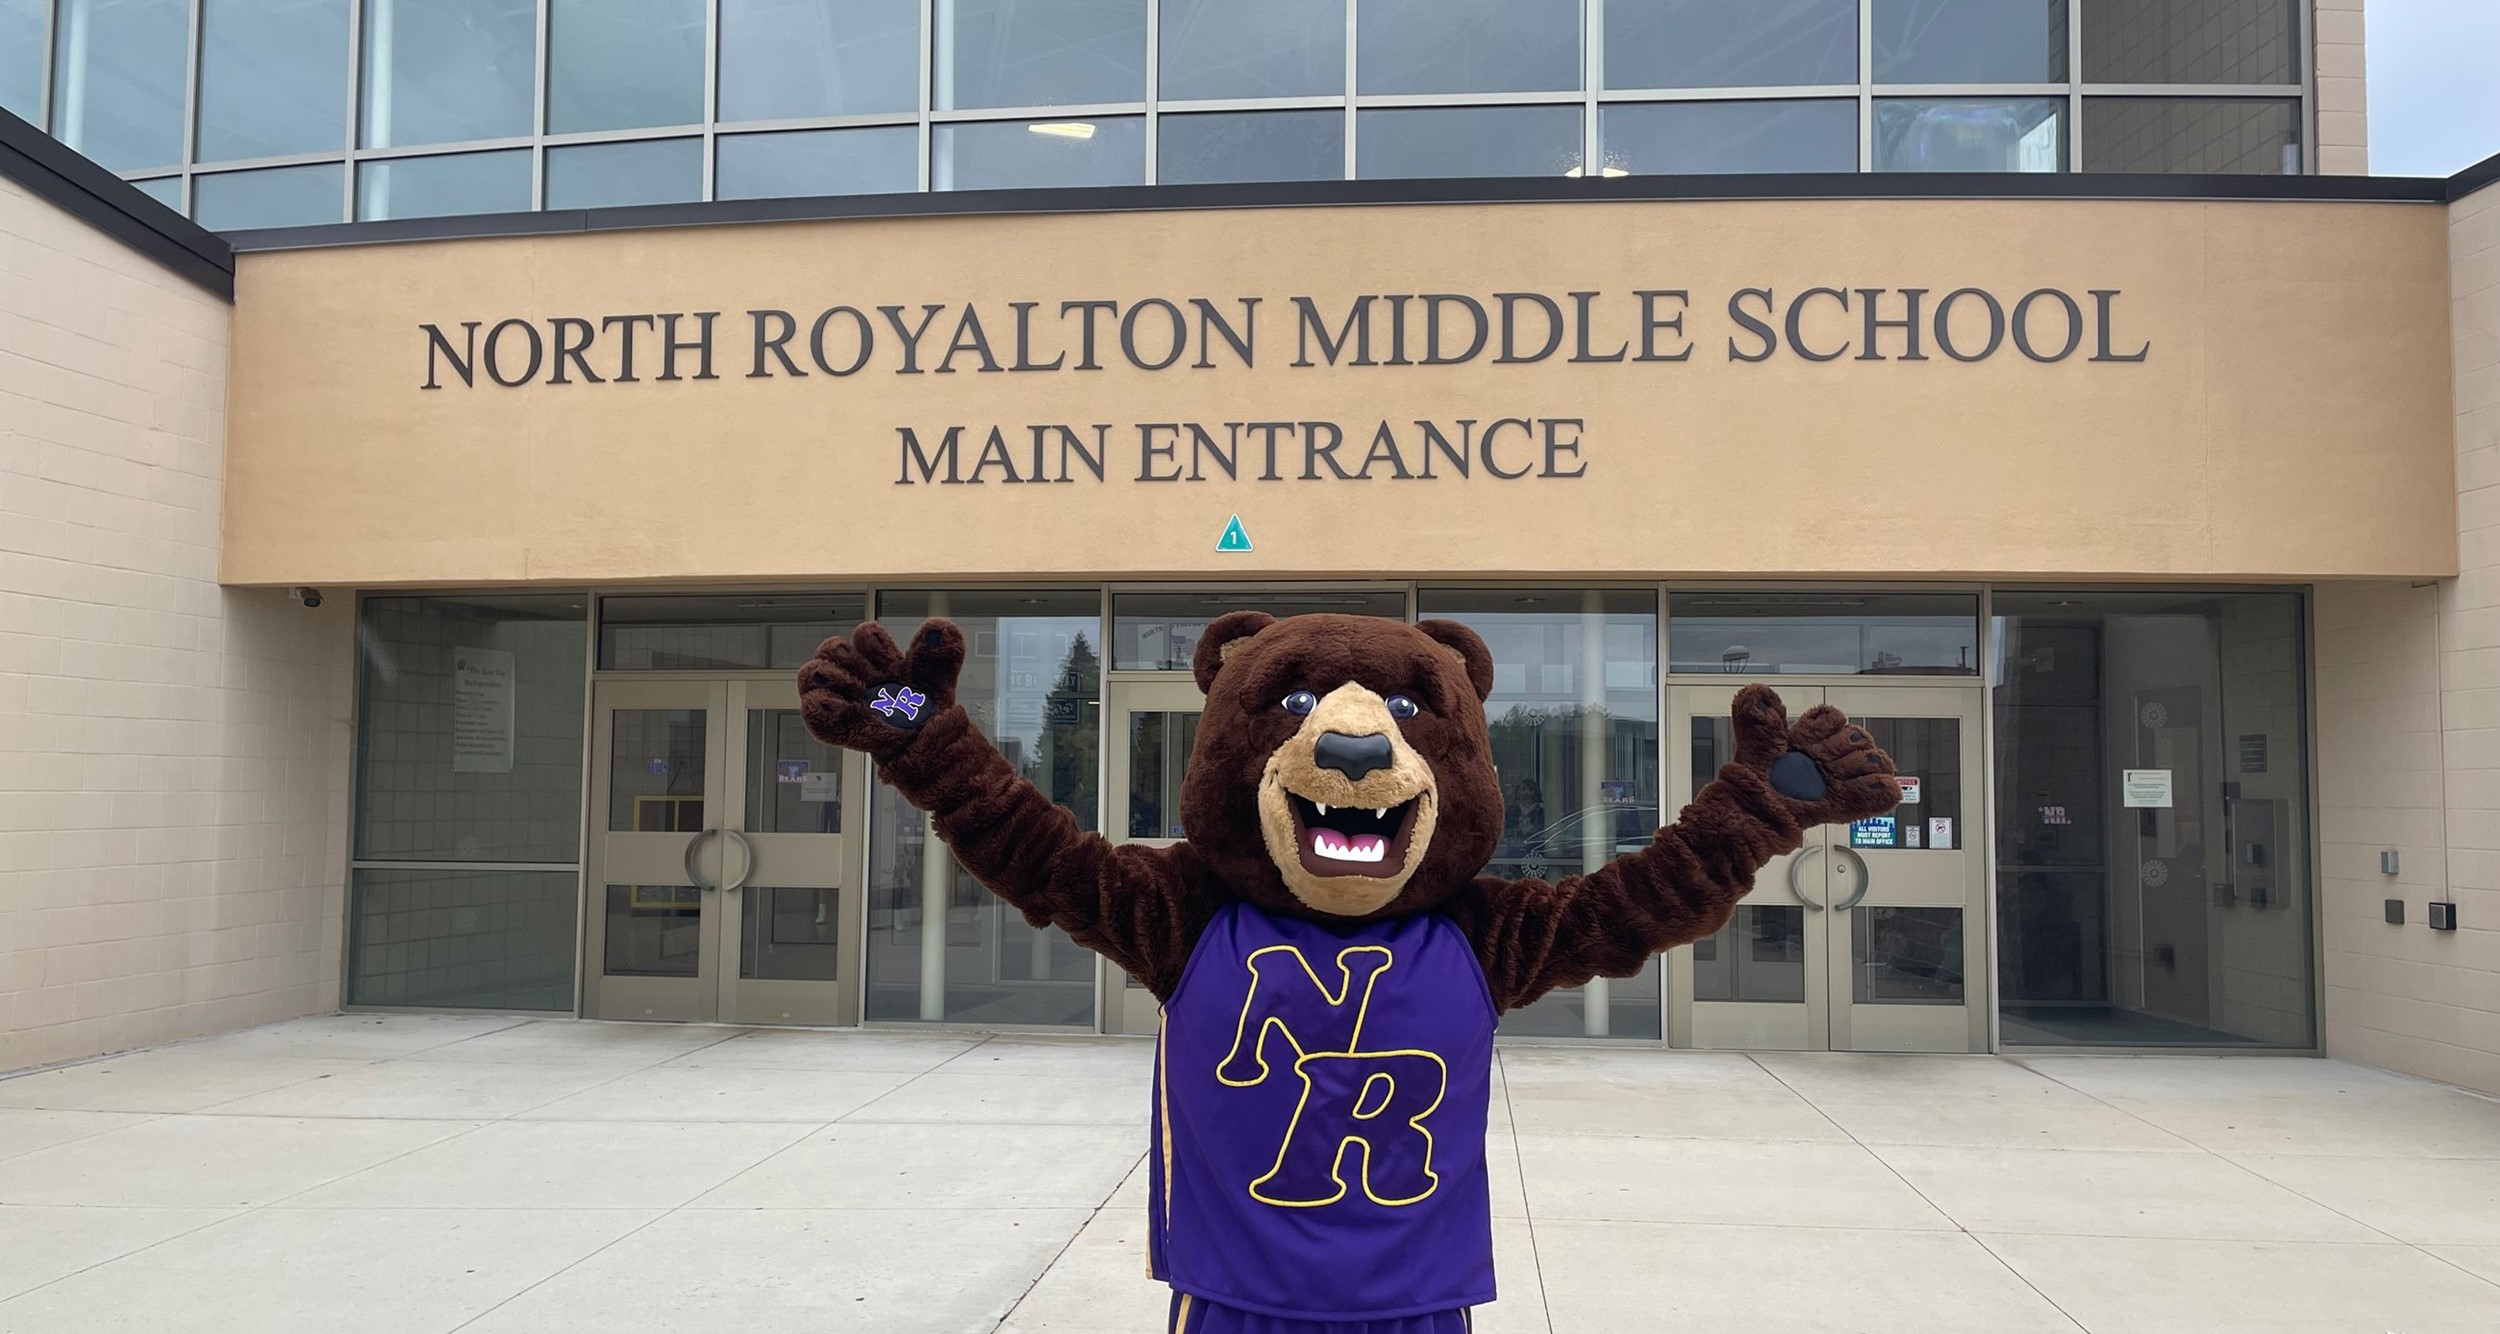 Gibby the mascot in front of North Royalton Middle School